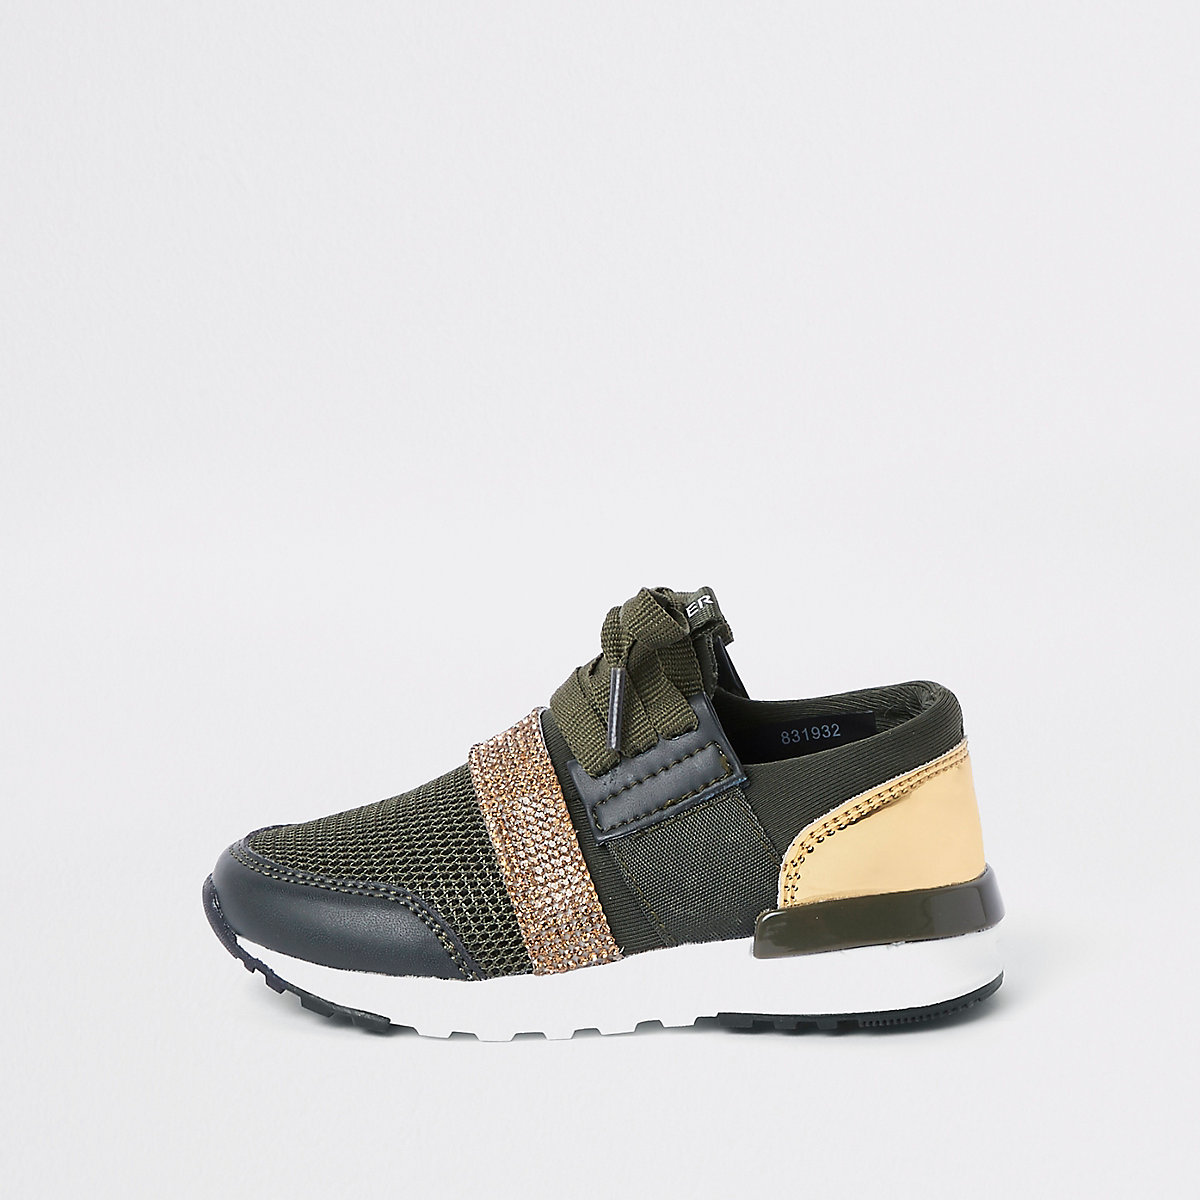 Mini khaki green gem strap runner sneakers